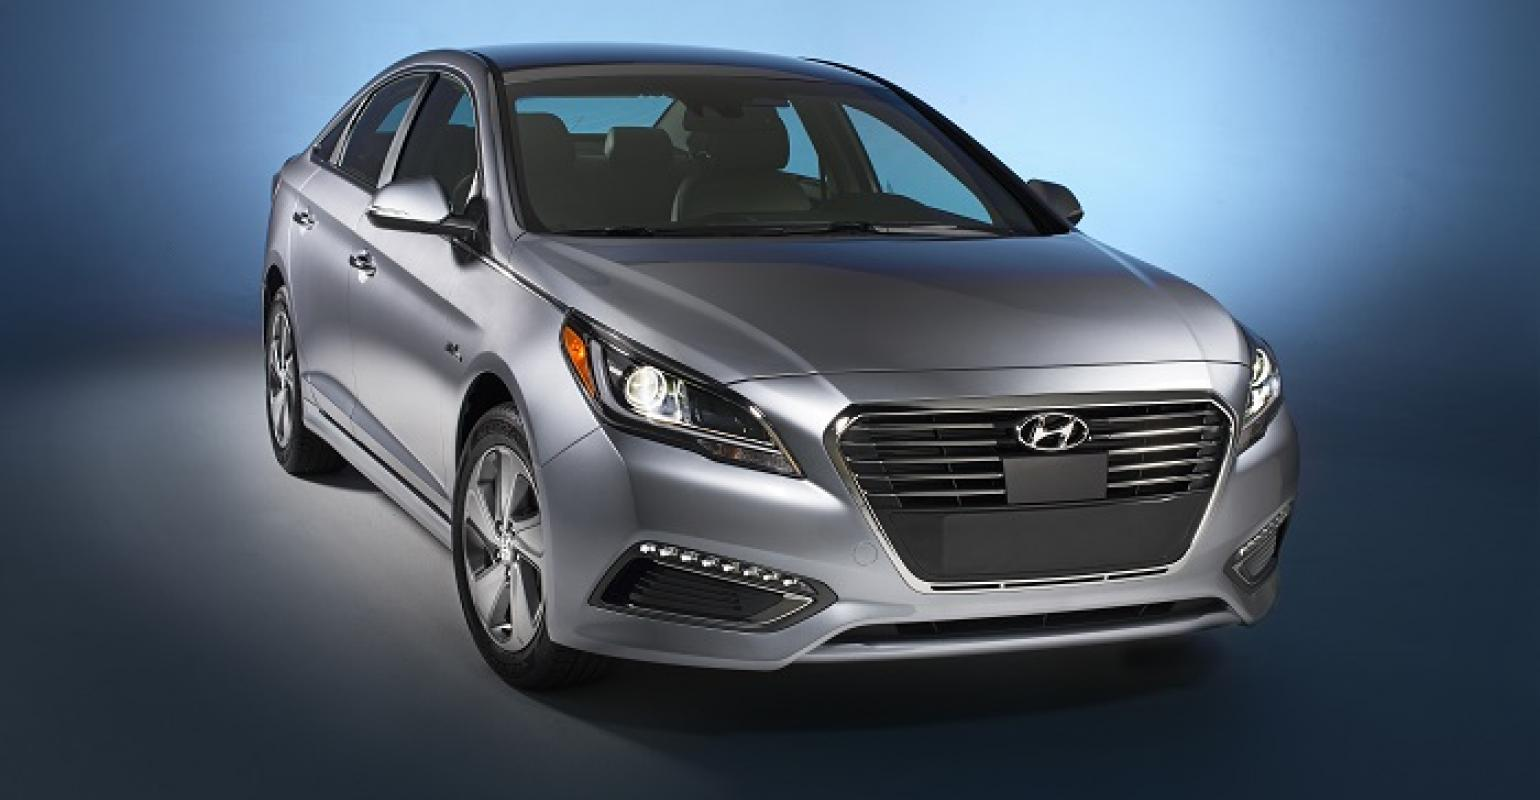 Sonata Plugin Hybrid On In Select Us Markets Later This Year